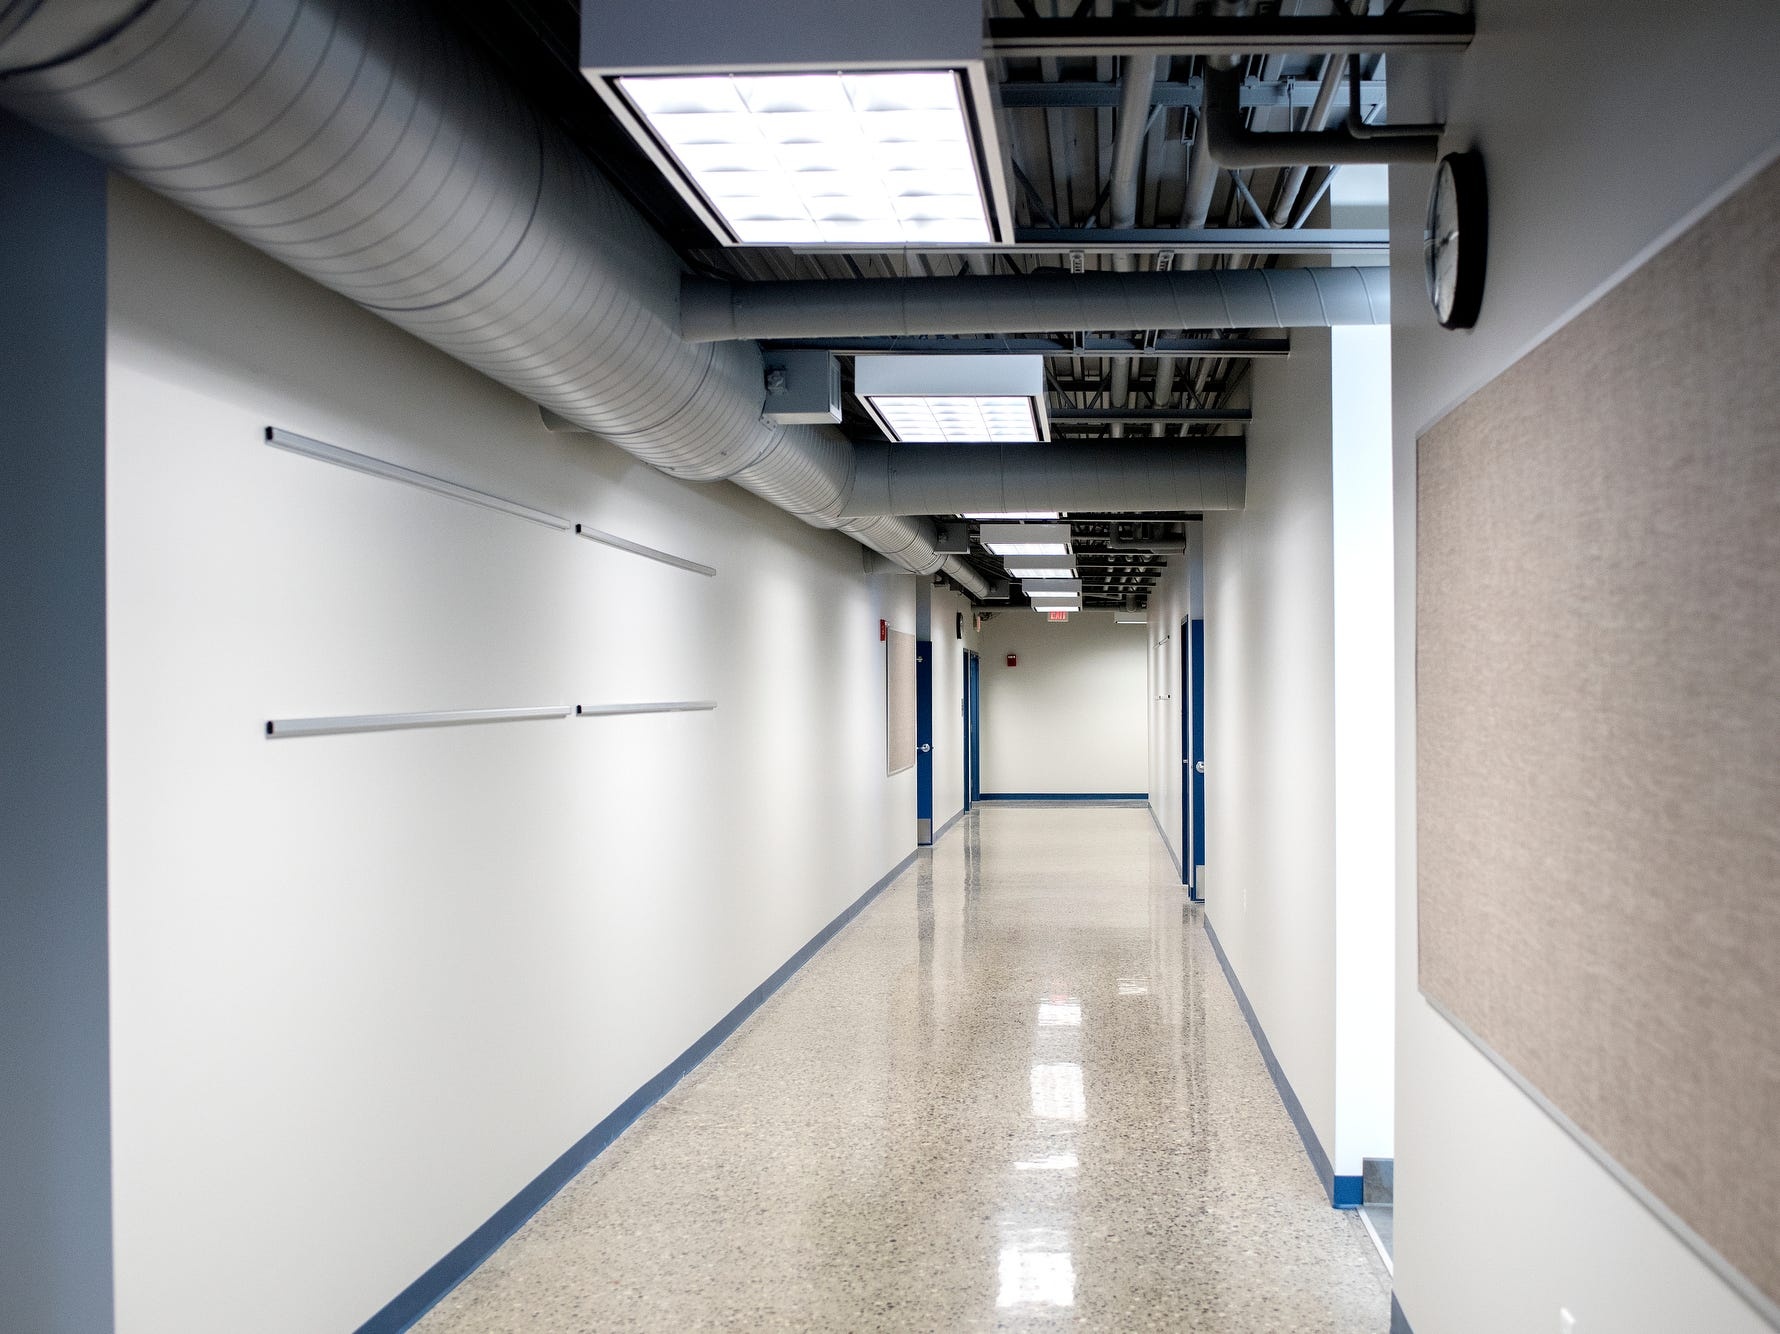 A hallway at Cole Academy's East Lansing campus photographed on Wednesday, Aug. 1, 2018. The school, Cole Academy's second campus, is opening this fall.